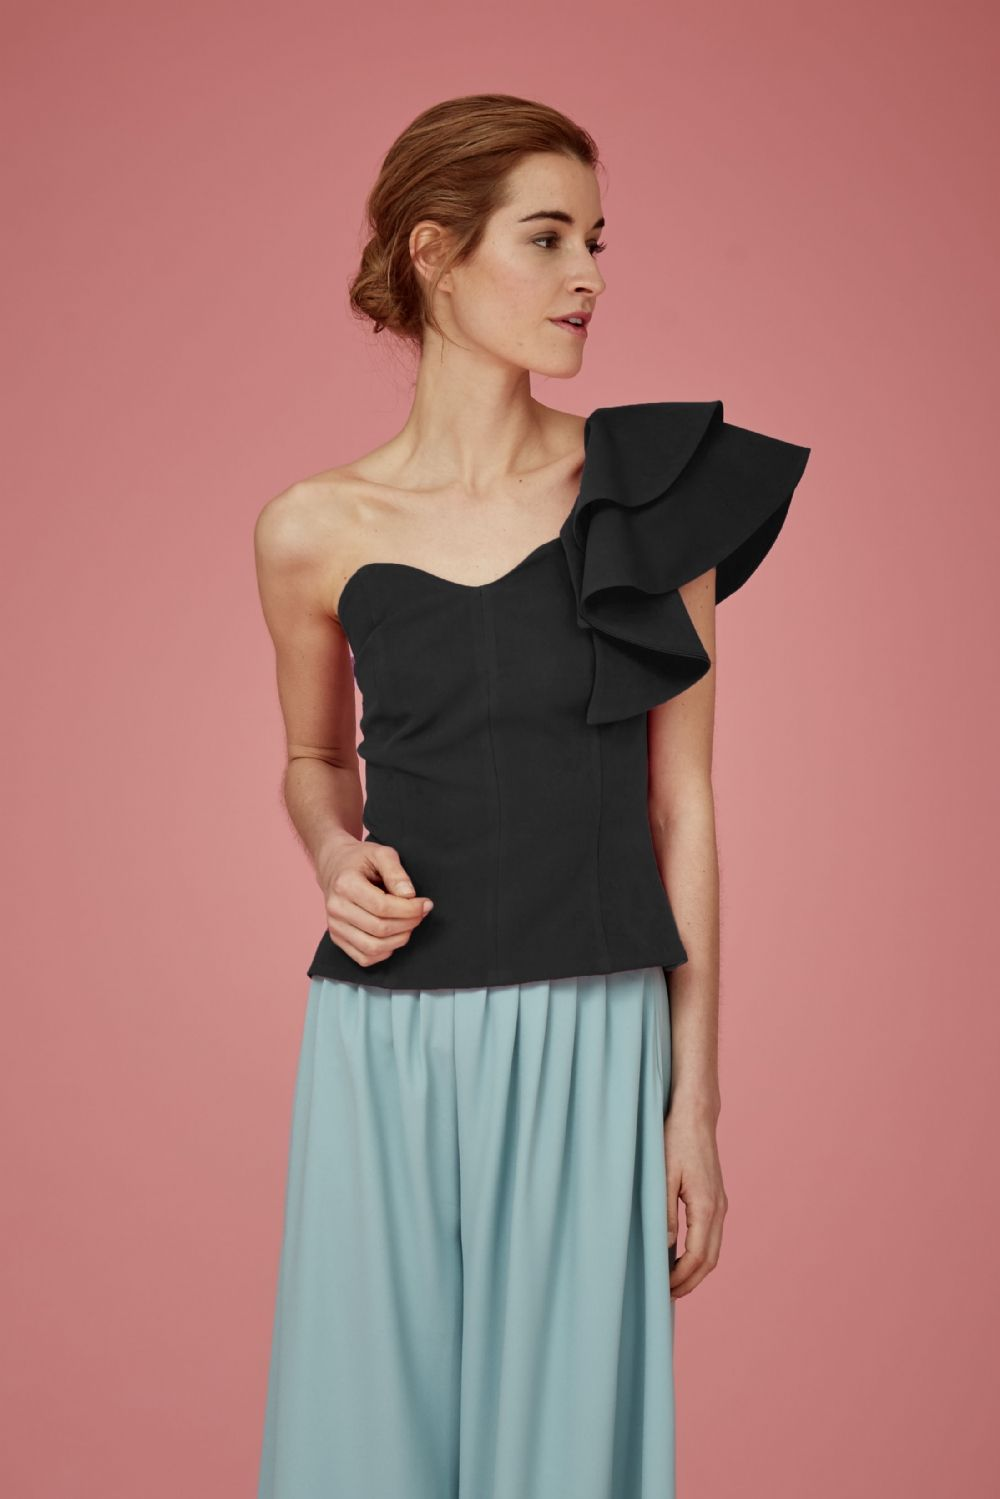 Coosy - TOP TELISA NEGRO | Coosy SS17 | Pinterest | Ropa formal ...